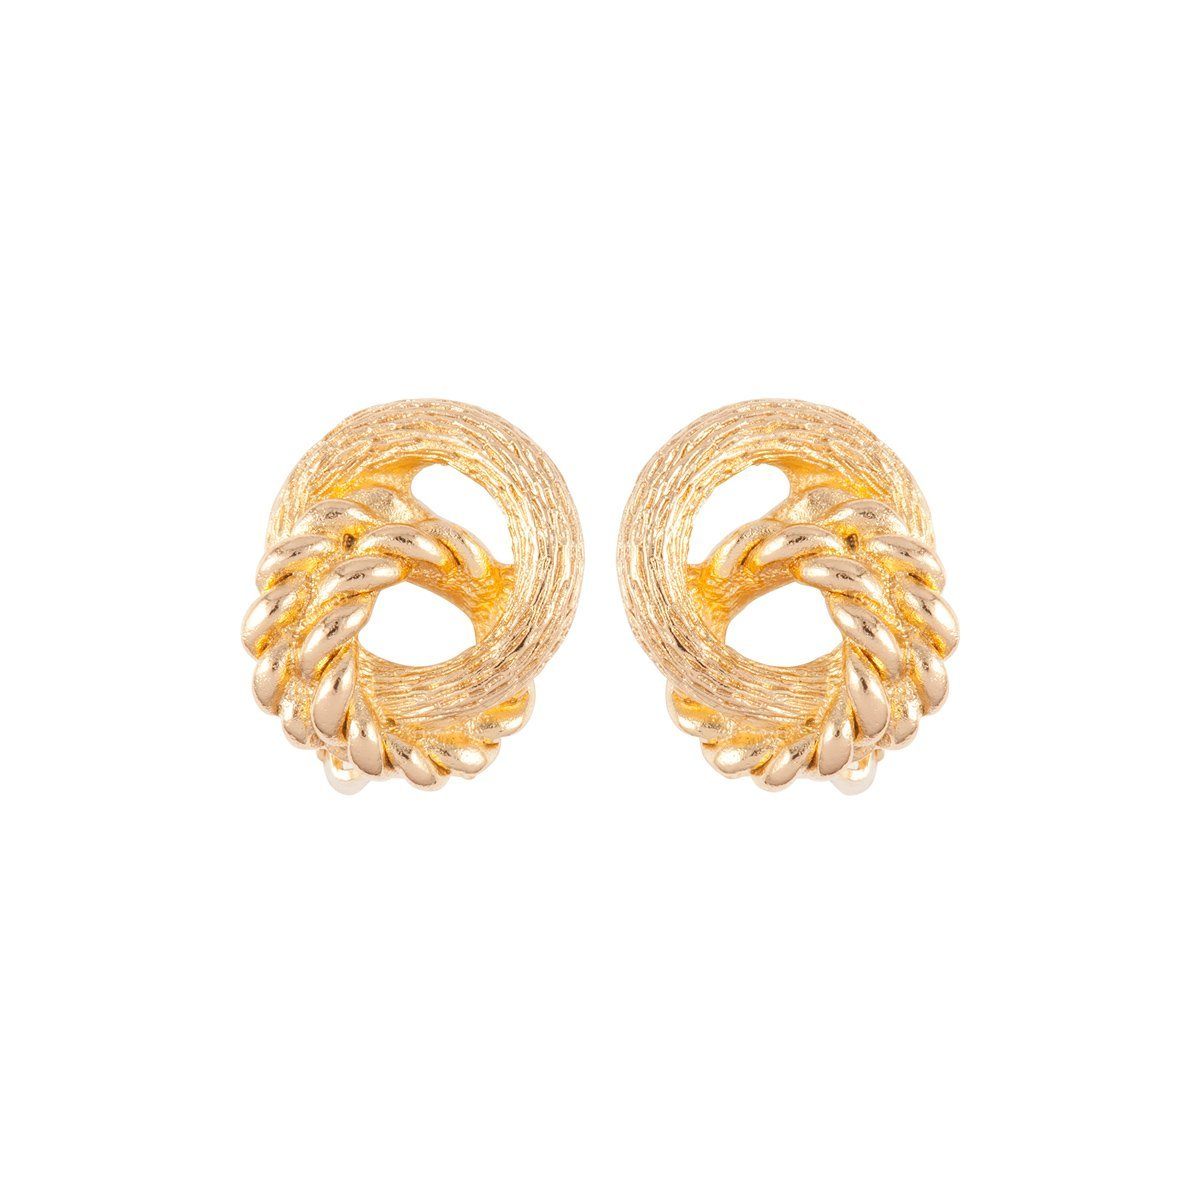 1980S Vintage Christian Dior Knot Clip-On Earrings